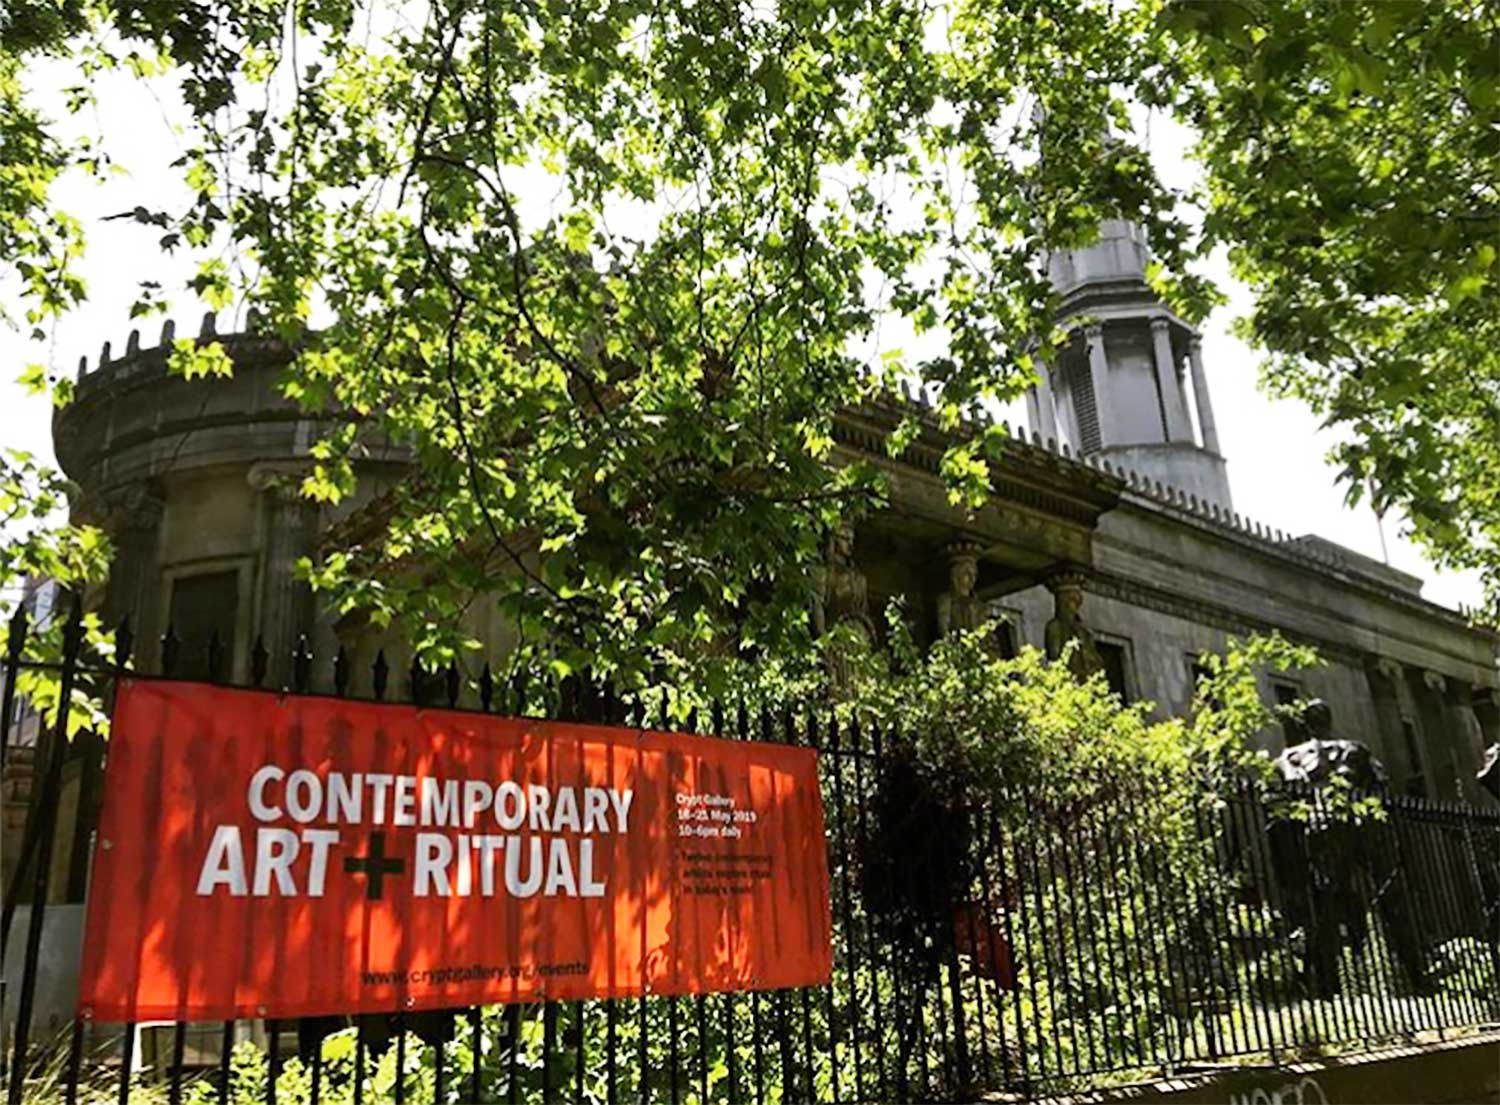 Contemporary Art and Ritual , Crypt Gallery, London NW1 2BA 16-21 May 2019 Opens daily 10am-6pm, Free admission   https://artandritual.wixsite.com/mysite